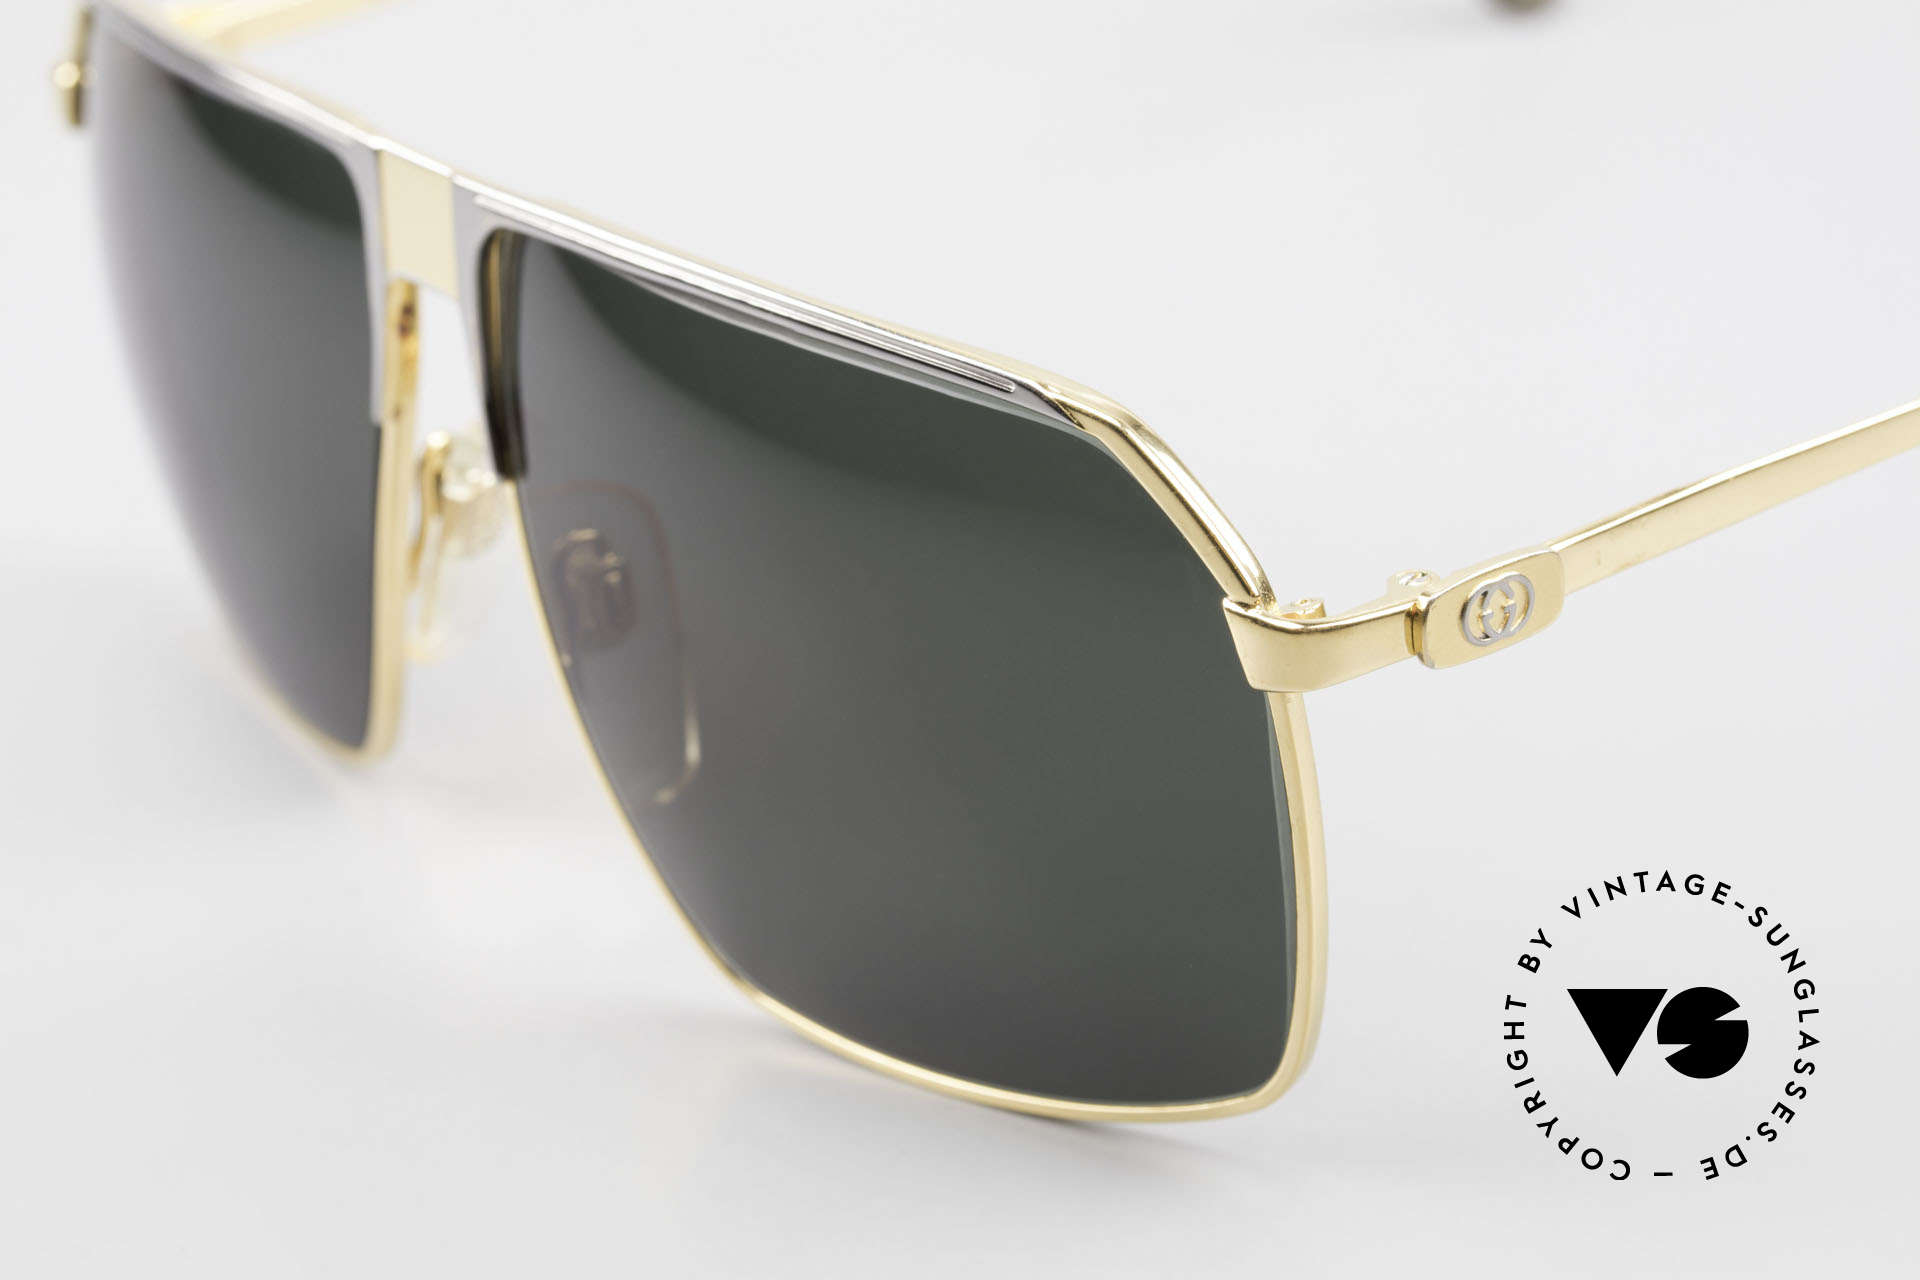 Gucci GG41 22kt Gold-Plated Sunglasses, with the famous Gucci symbol (2 connected stirrups), Made for Men